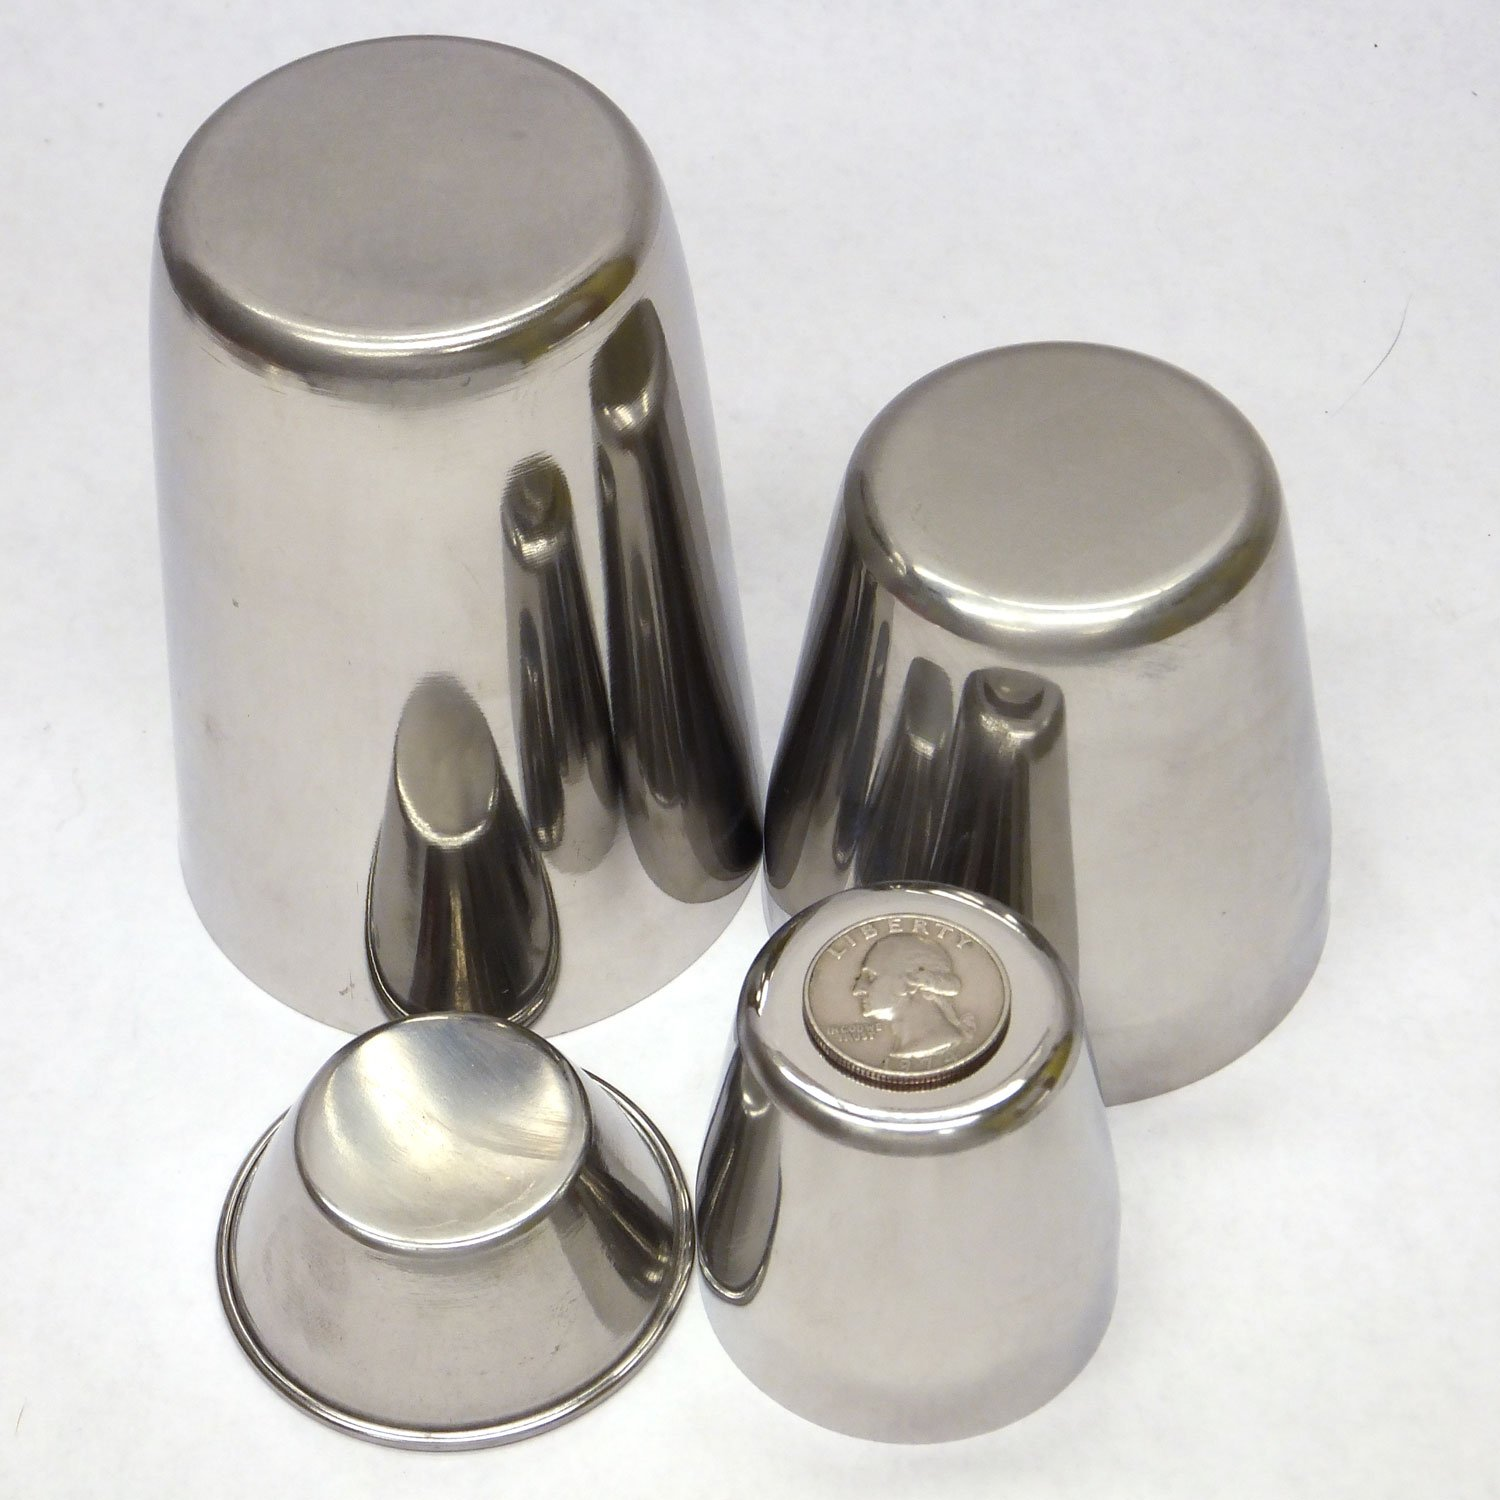 Stainless Steel Candle Cup Mold Set